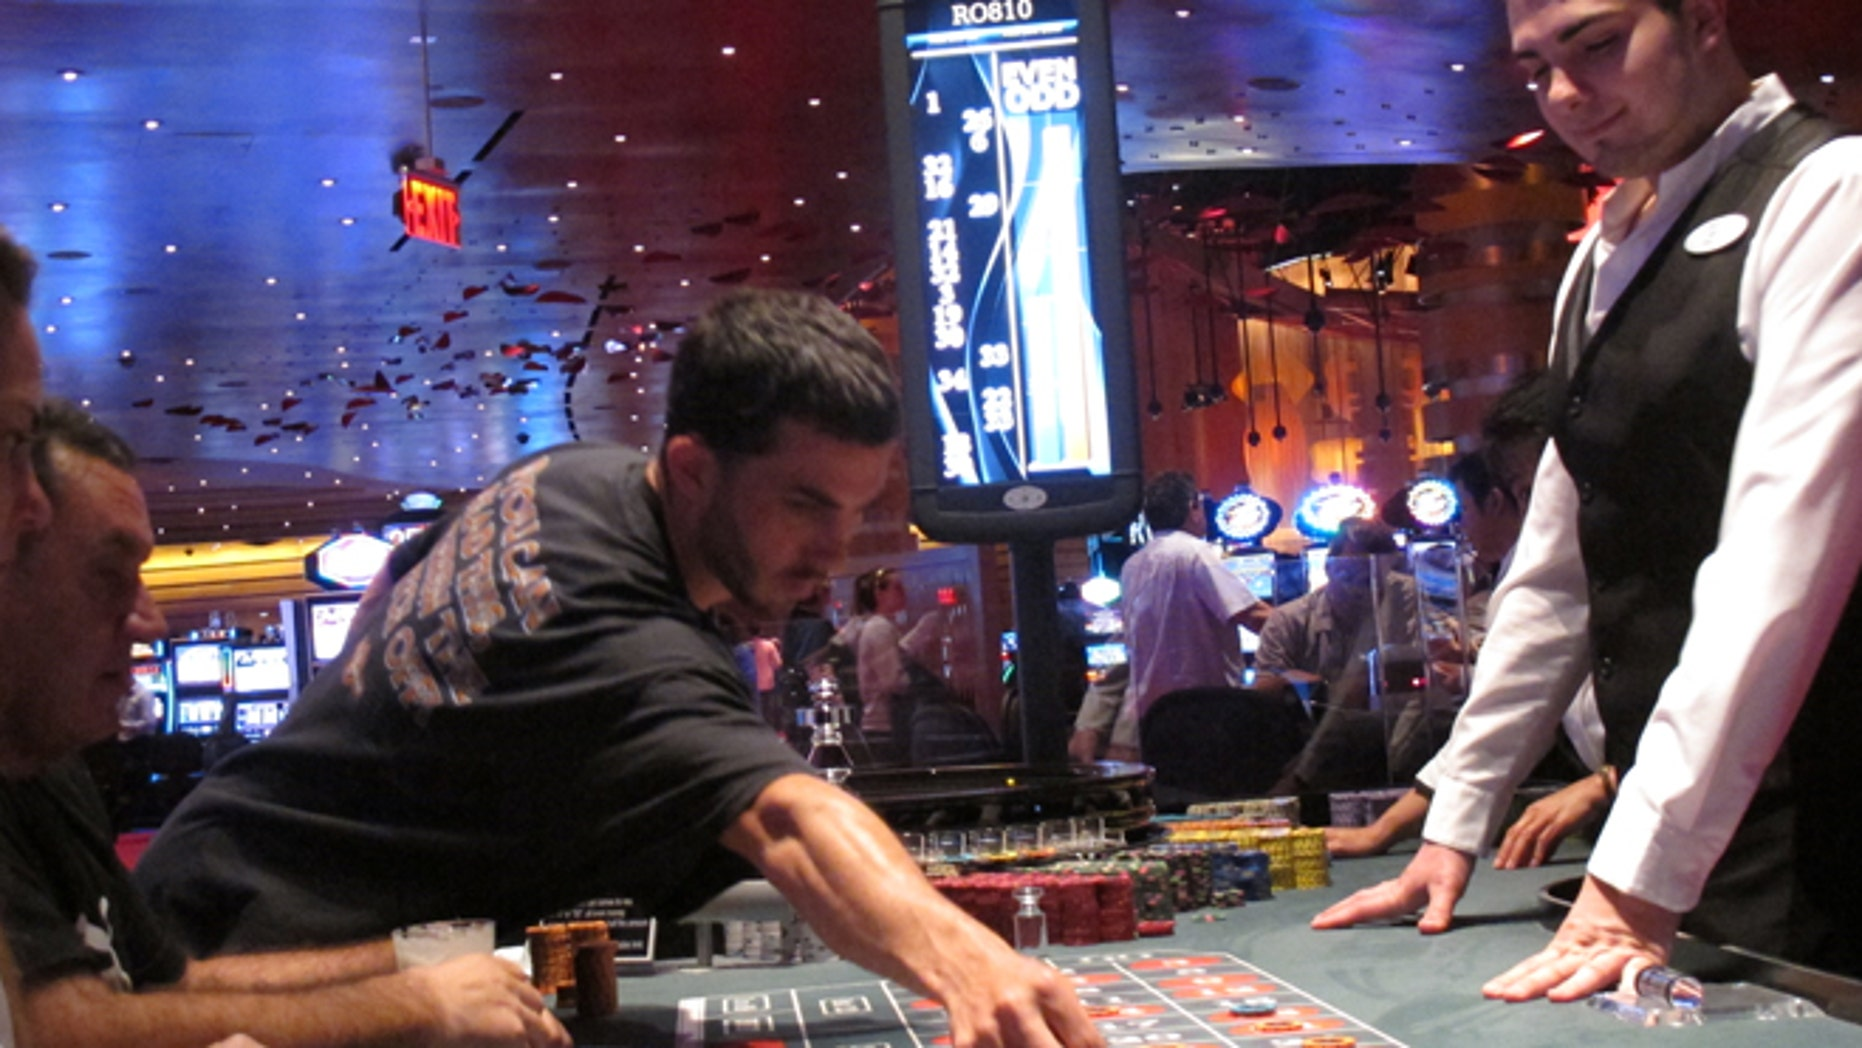 May 21, 2012: A dealer watches as gamblers place bets on a roulette table at Revel Casino Hotel in Atlantic City, N.J. Revel is one of three Atlantic City casinos that could close by September in a wave of casino contraction that could be a glimpse of the future for other parts of the country with too many casinos and not enough gamblers to support them. (AP/Wayne Parry)